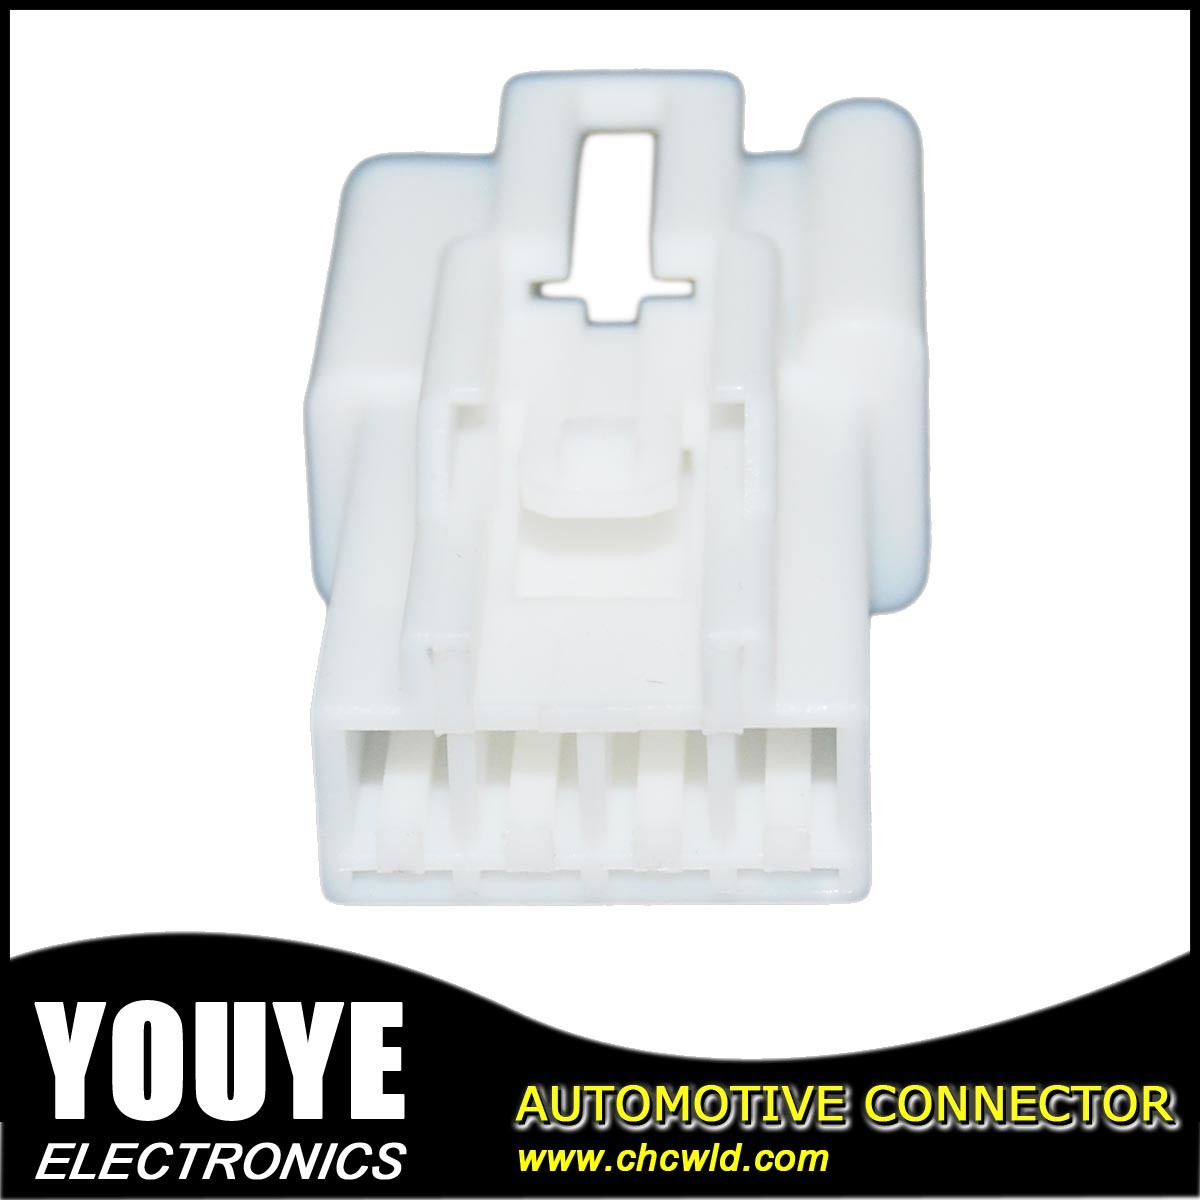 4 Poles PBT Plastic Automotive Connector Housing